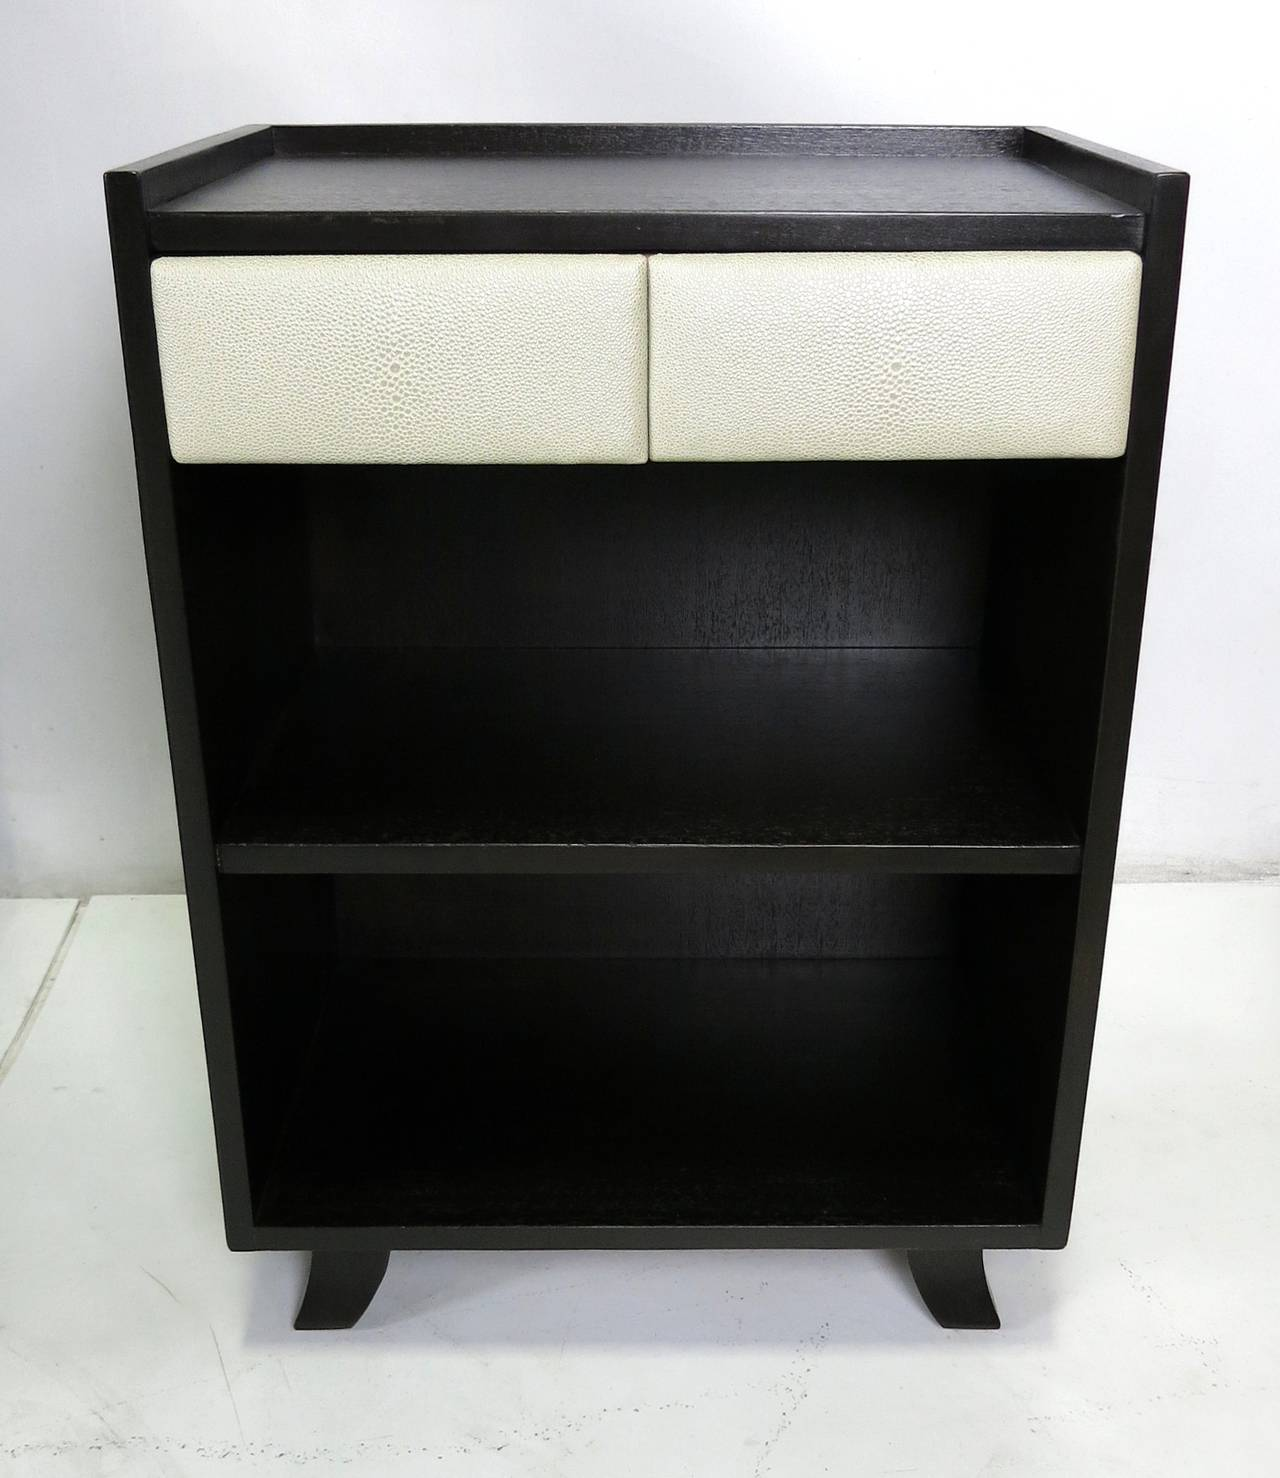 Pair of mahogany nightstands or side tables by Gilbert Rohde for Herman Miller. The stands have been meticulously restored in dark brown lacquer and the original Naugahyde drawer fronts have been freshly reupholstered with faux shagreen.